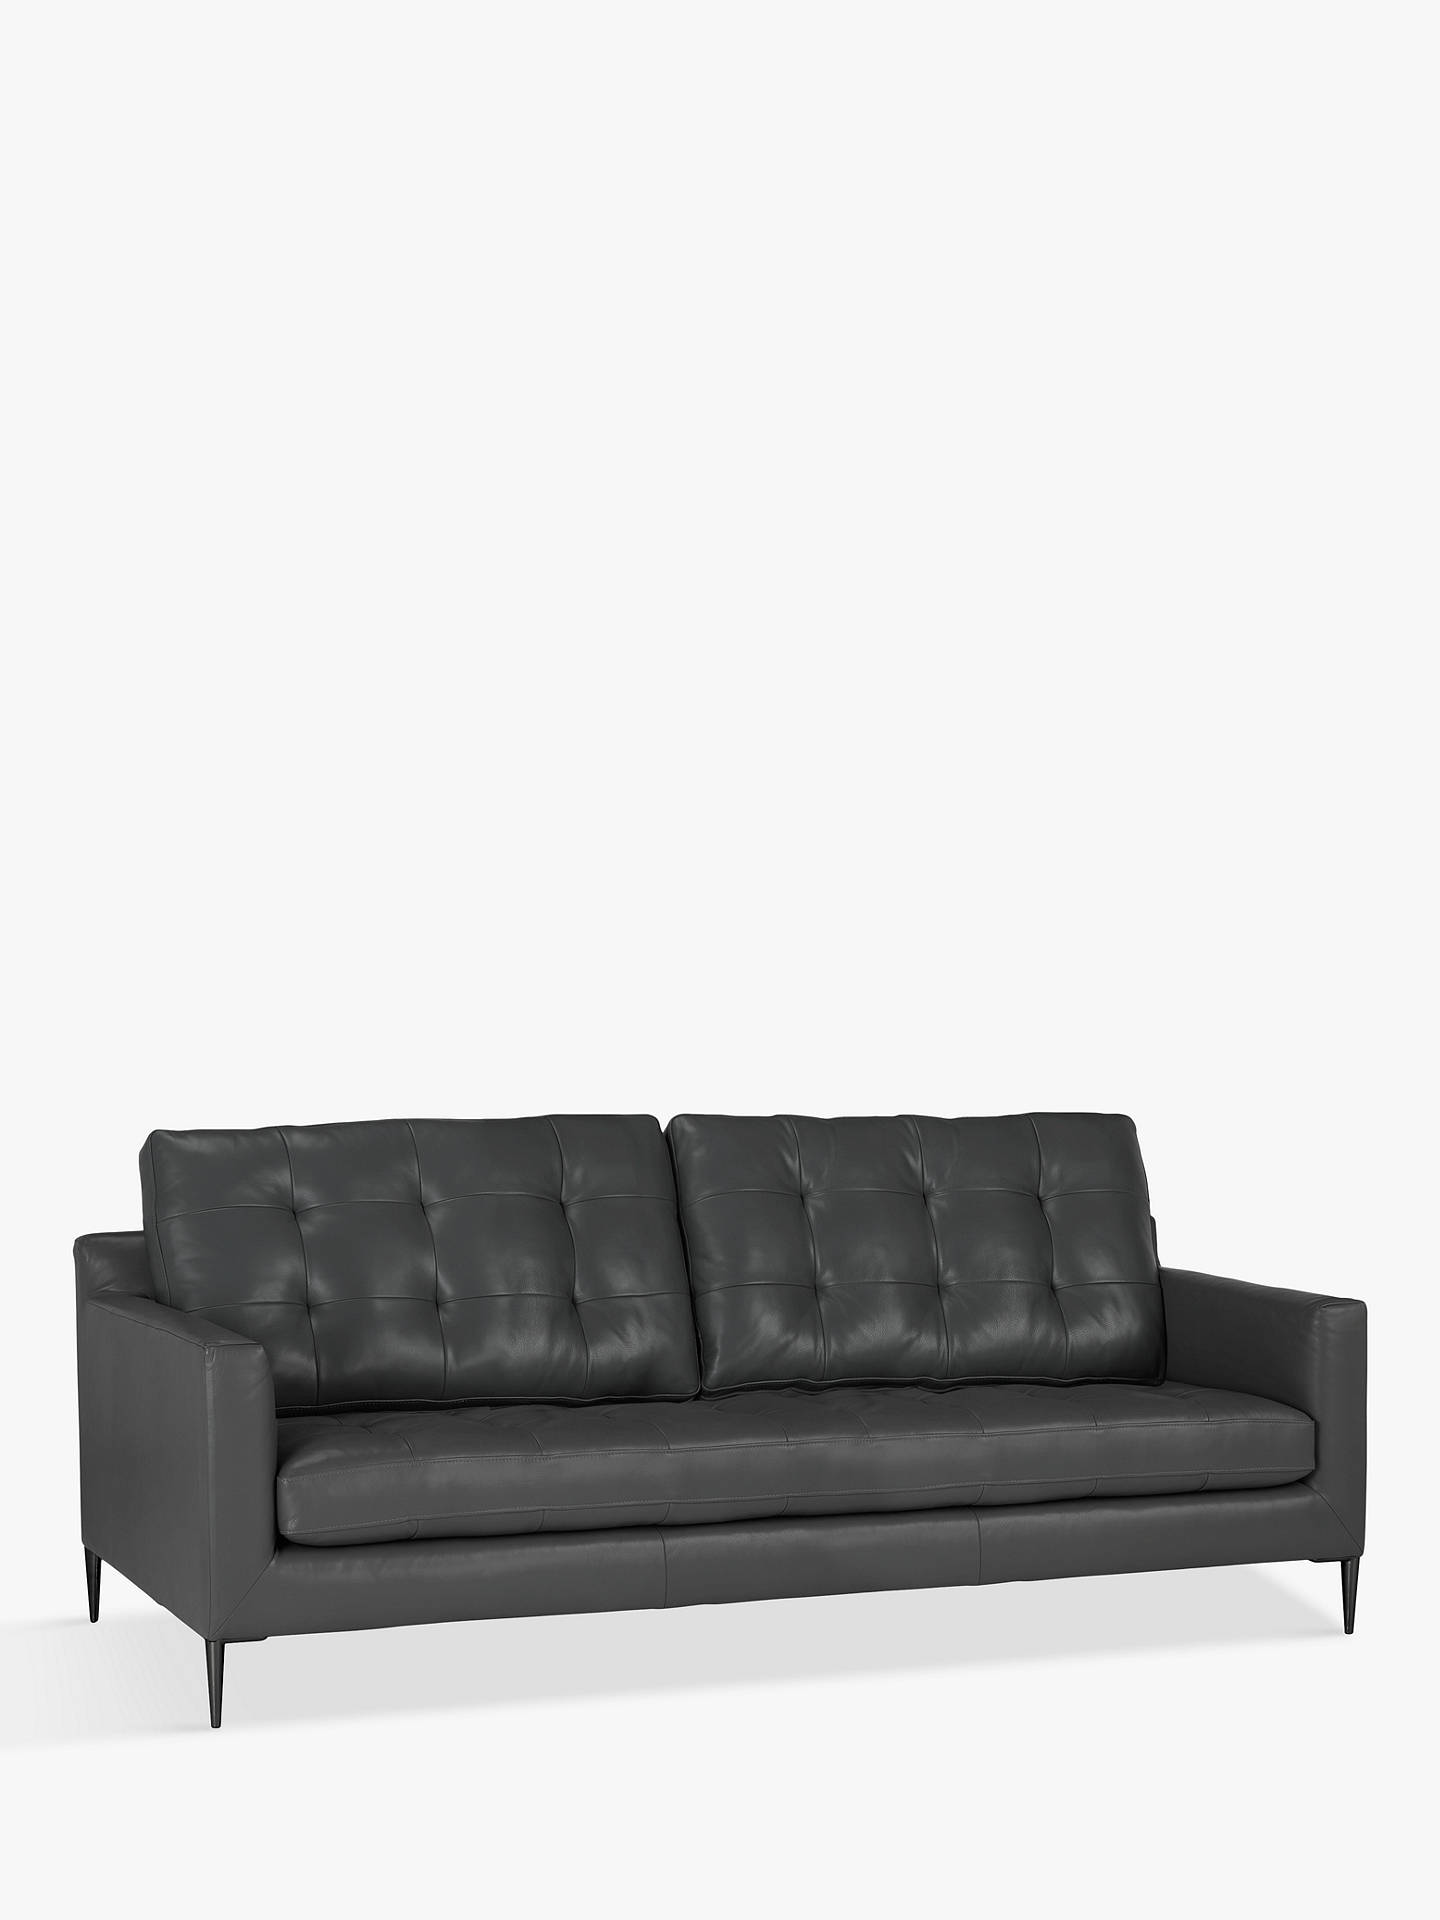 John Lewis & Partners Draper Large 3 Seater Leather Sofa, Metal Leg,  Winchester Anthracite